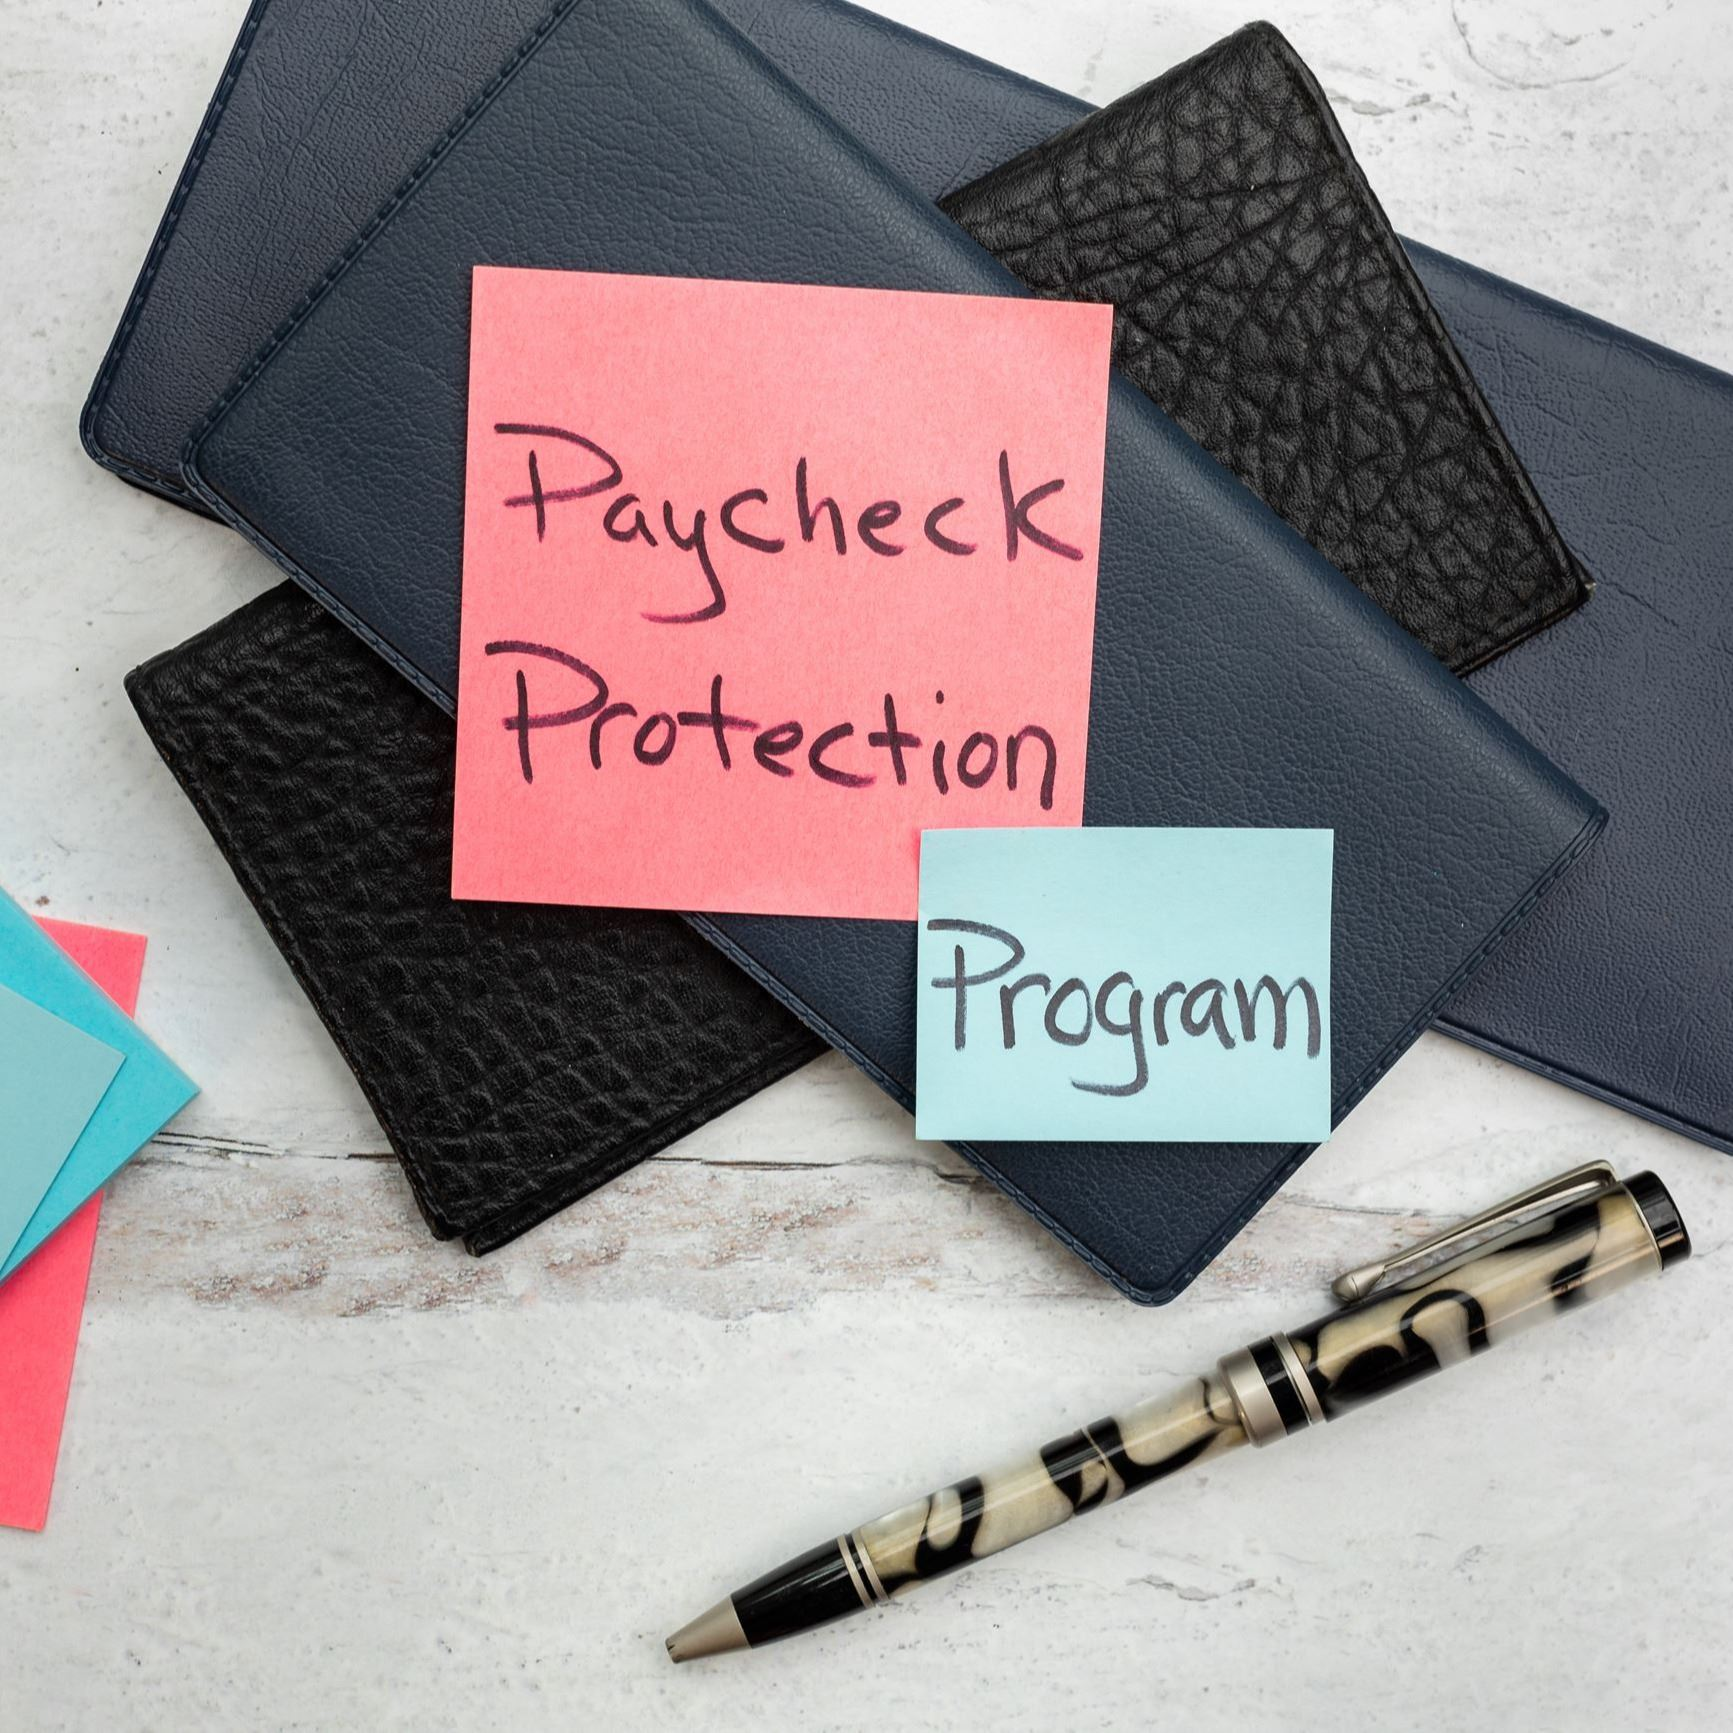 Paycheck Protection Program written on sticky notes.